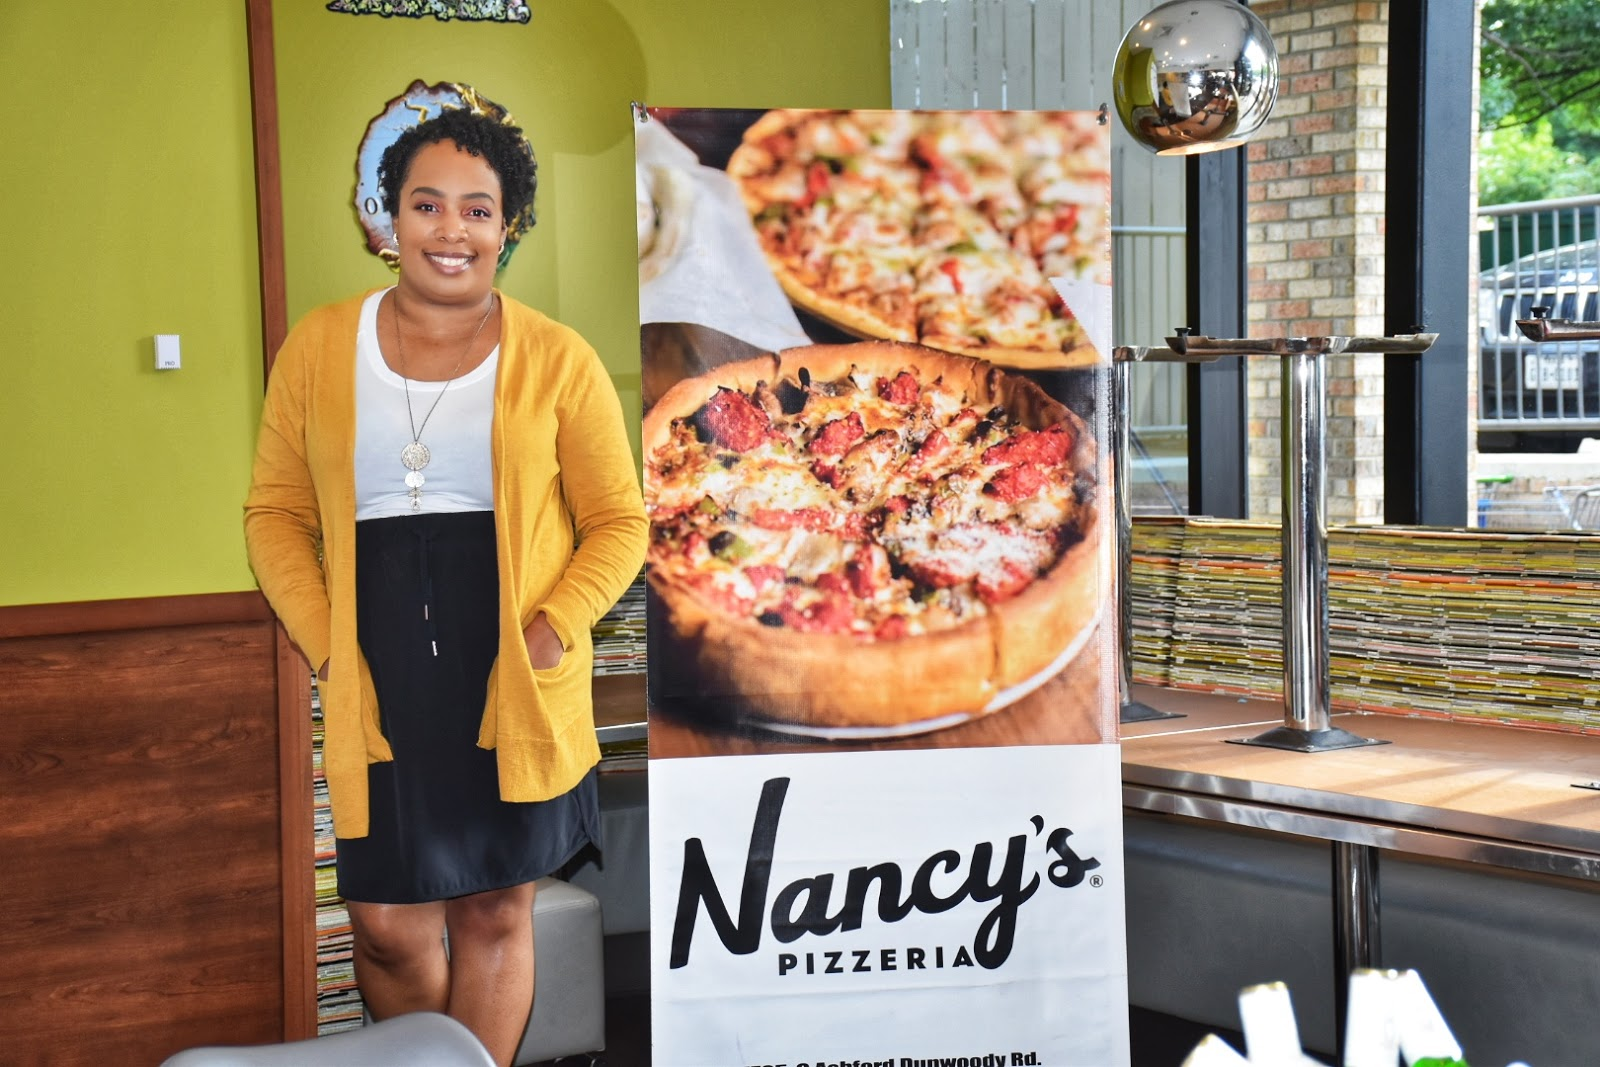 Celebrating Black Restaurant Week at Nancy's Pizzeria in Dunwoody, Georgia